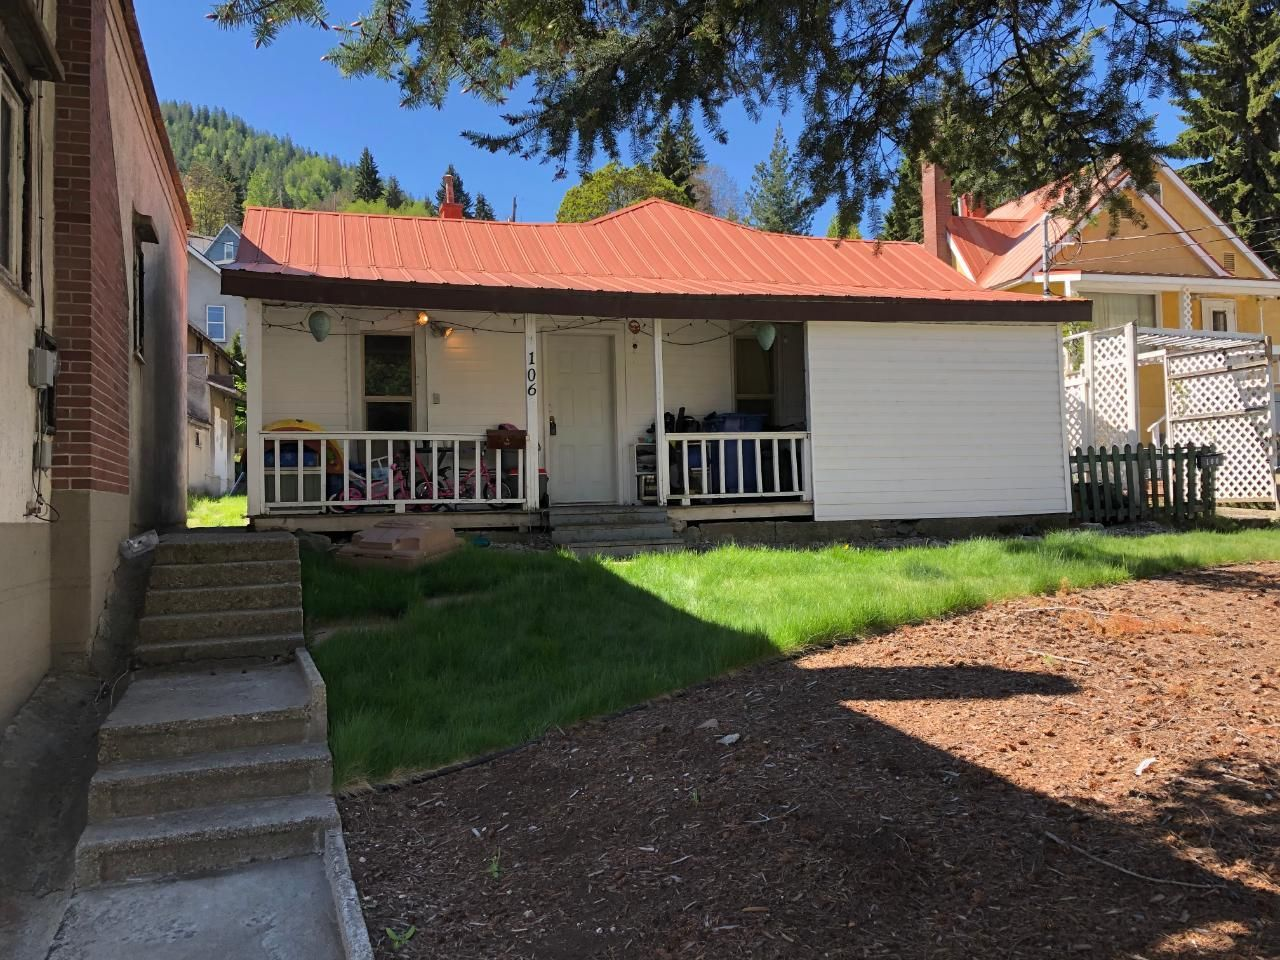 Main Photo: 106 ROSSLAND AVENUE in Trail: House for sale : MLS®# 2458438